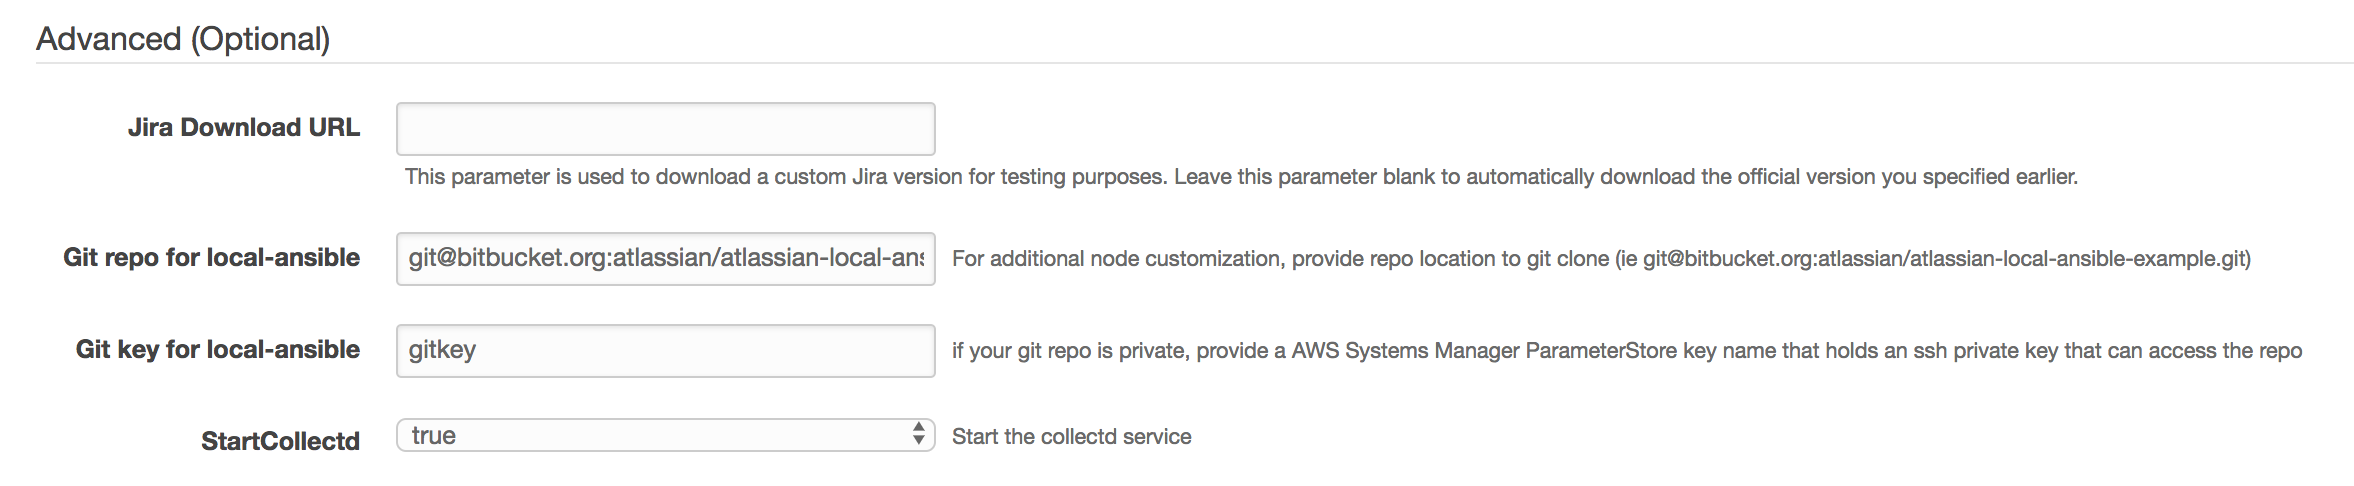 Aws cloudformation templates using ansible atlassian documentation you should fork the atlassian local ansible exmaple repo and modify it to suit your needs maxwellsz